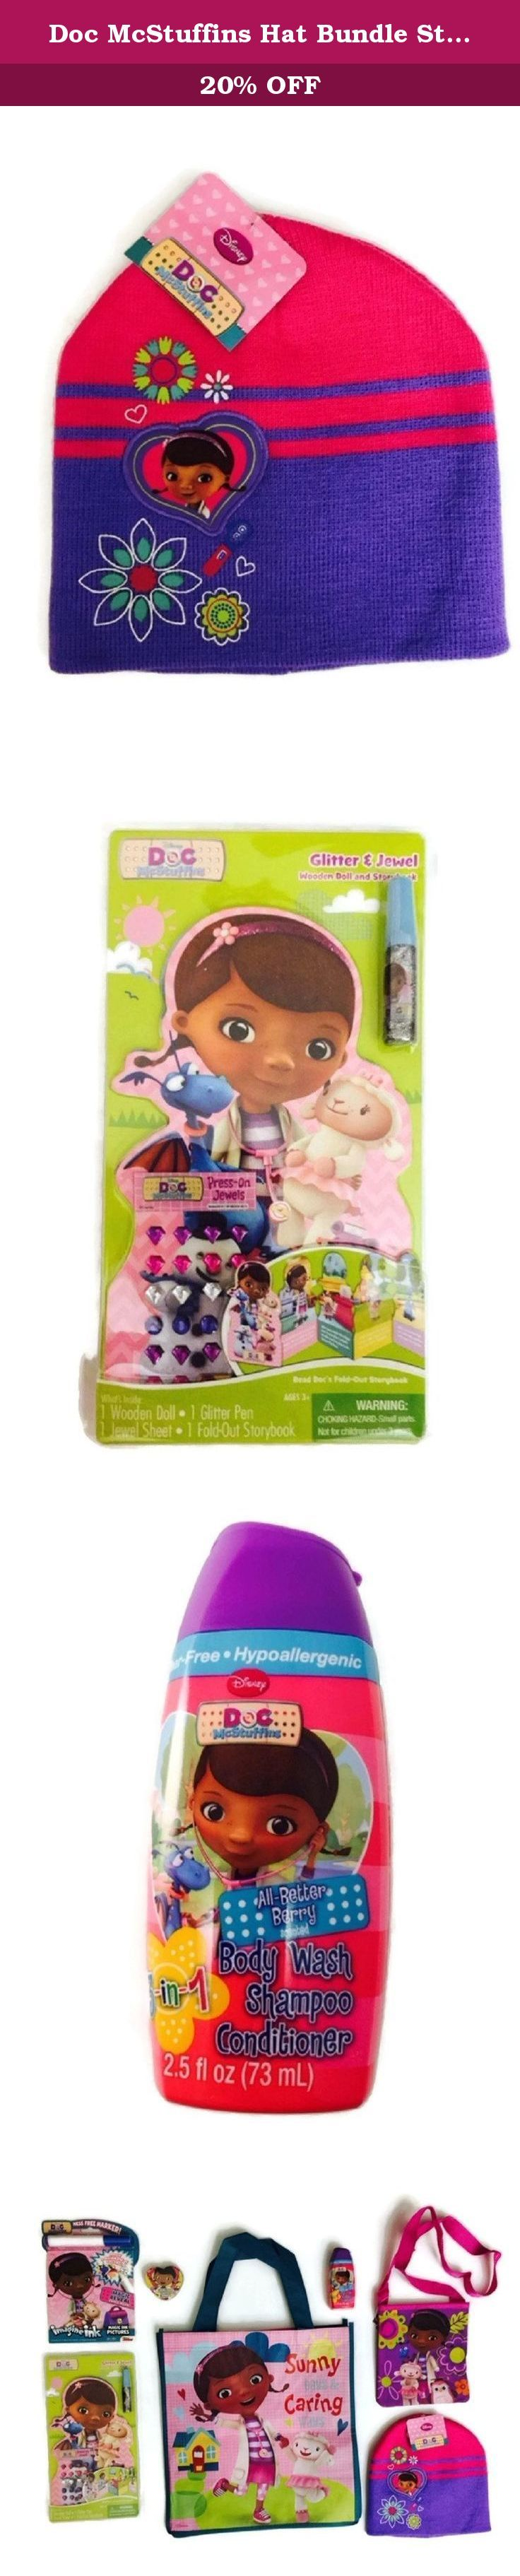 Doc McStuffins Hat Bundle Stocking Cap Disney Shampoo Purse Wooden Doll Storybook. This Doc McStuffins Hat Bundle has a lot of fun stuff. The Doc McStuffins Stocking Hat is one size fits all! The Disney Doc McStuffins 3 in 1 Body Wash, Shampoo & Conditioner is formulated to be mild and gentle enough to use everyday. Plus, the tear-free formula will leave hair clean, soft, manageable and smelling great, in the various Berry scents. The Glitter & Jewel Storybook has stories and activities…